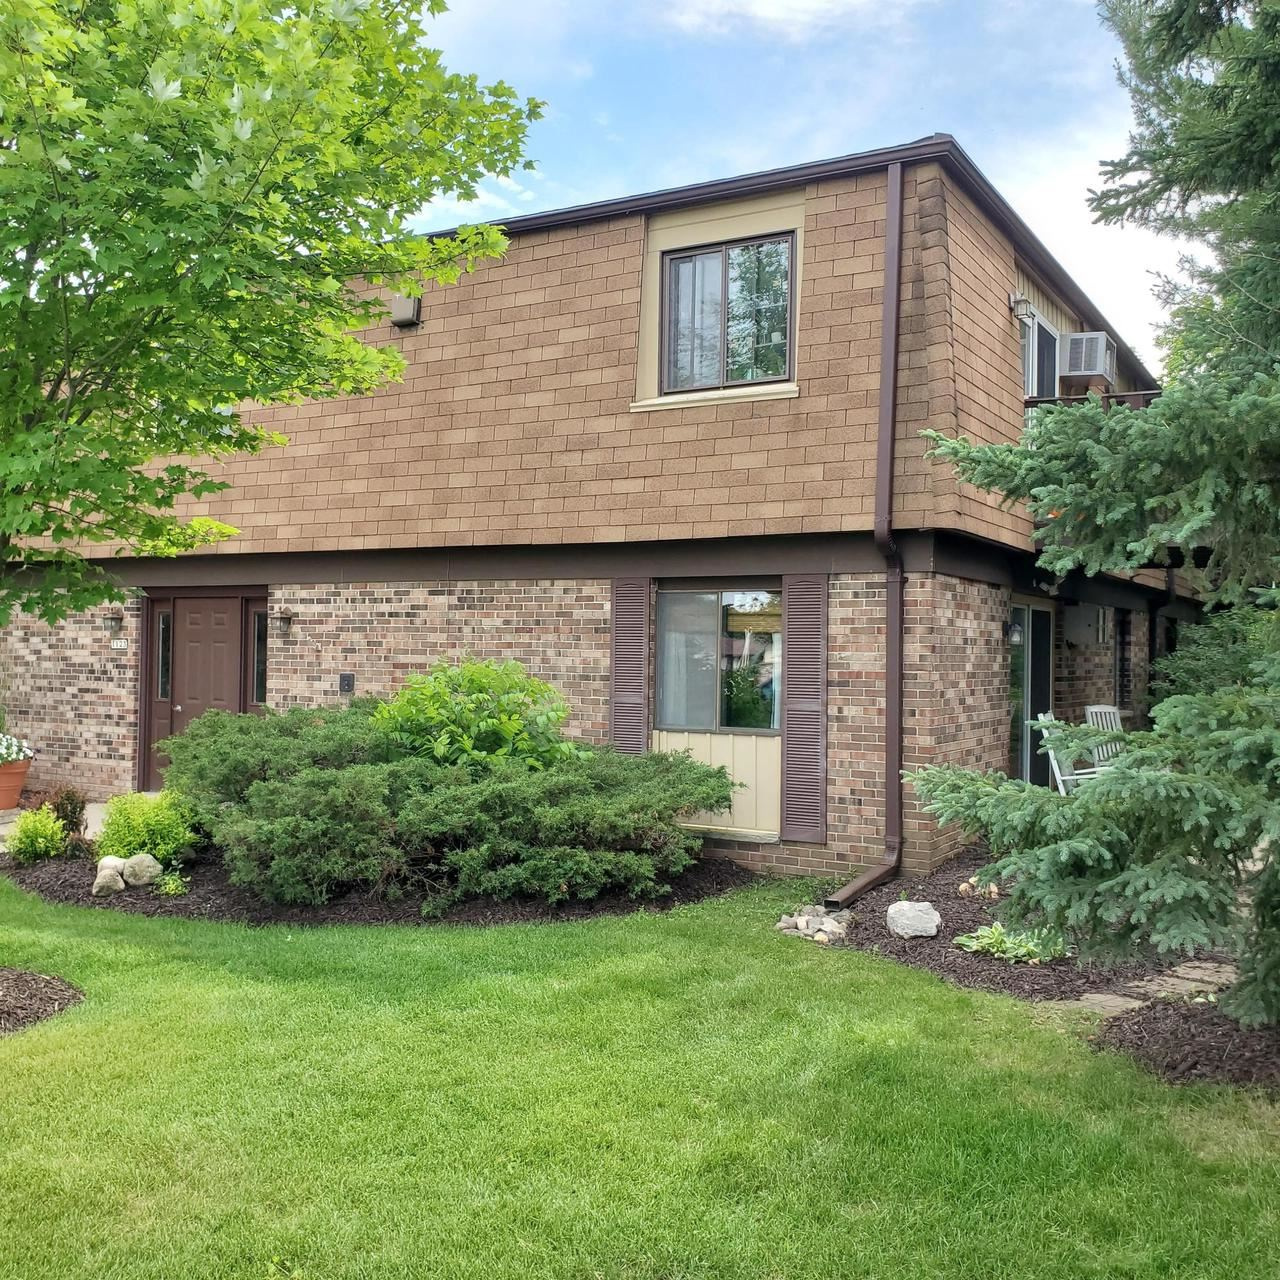 1123 Marcia AVE #105, West Bend, WI 53090 - MLS#: 1696025